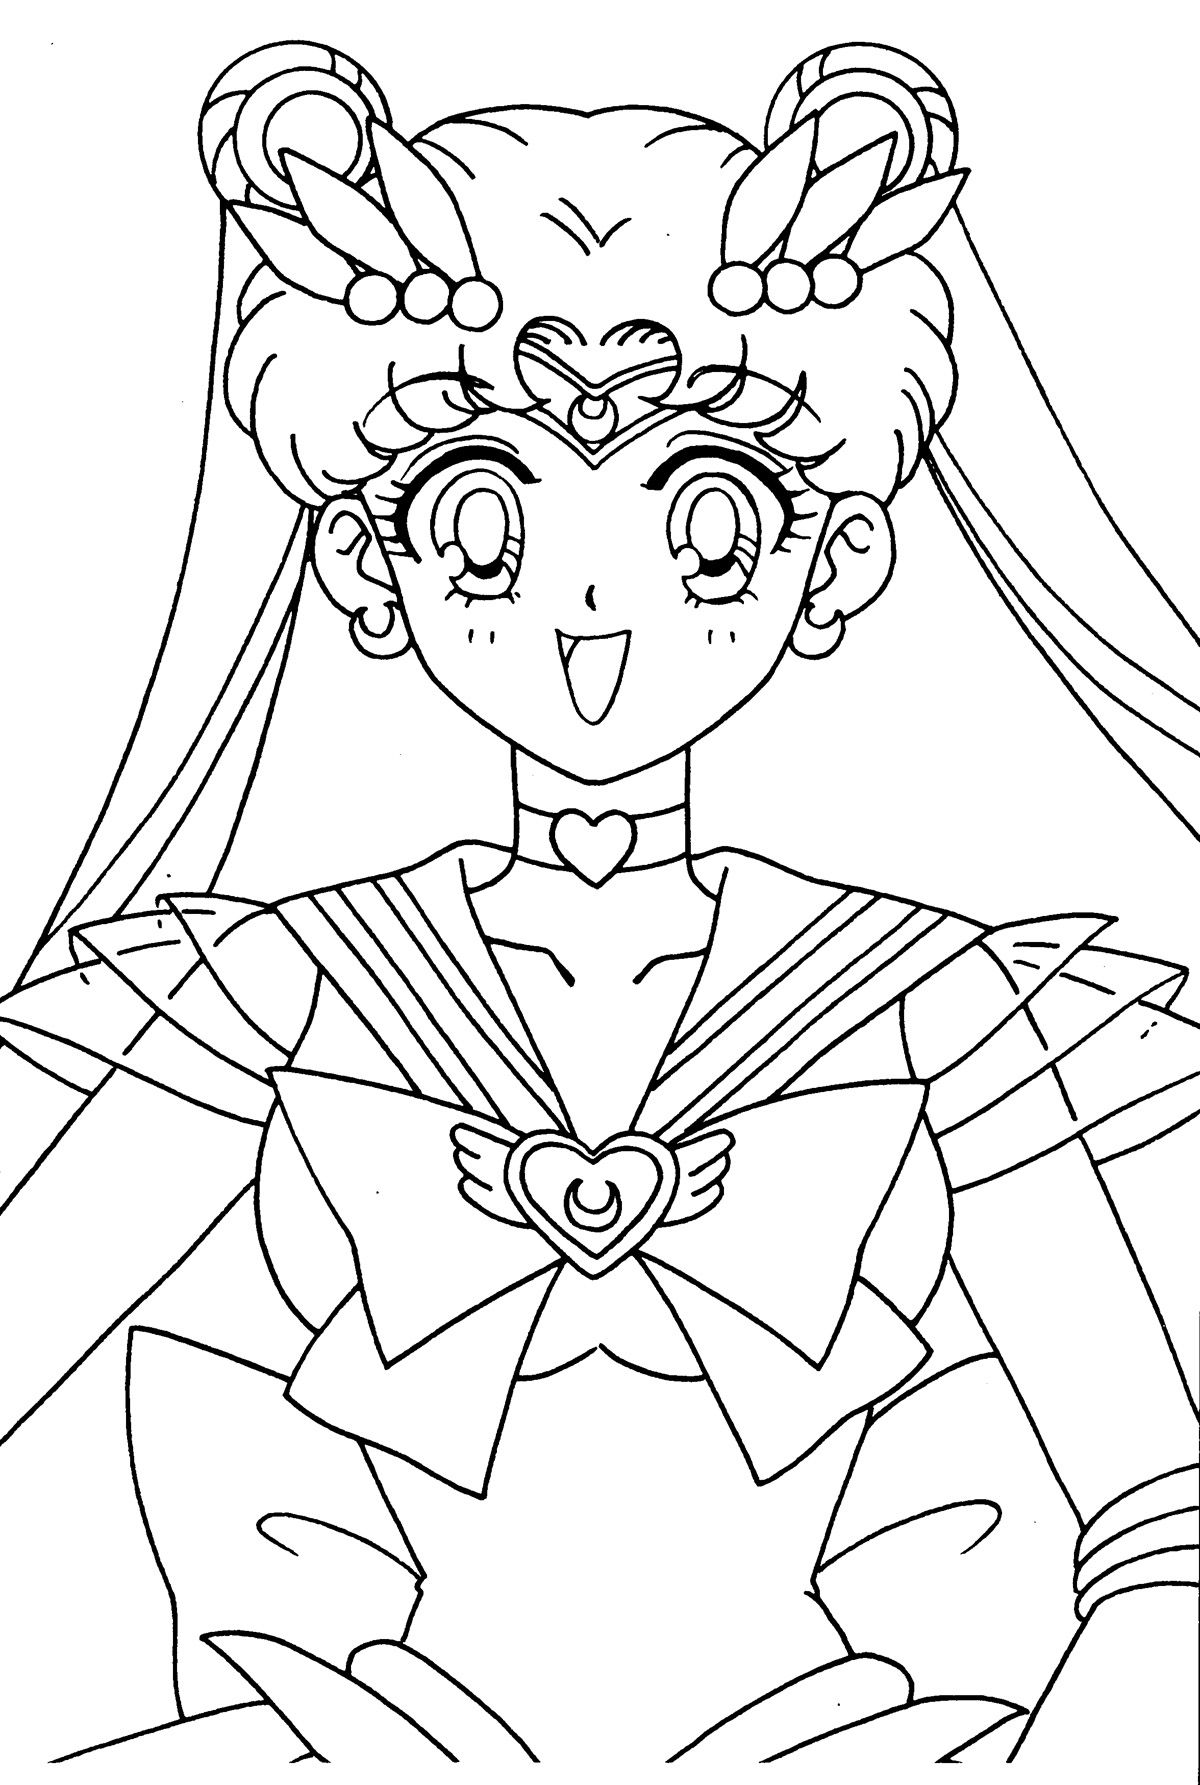 Moon018 Jpg 1200 1785 Sailor Moon Coloring Pages Sailor Moon Art Coloring Books